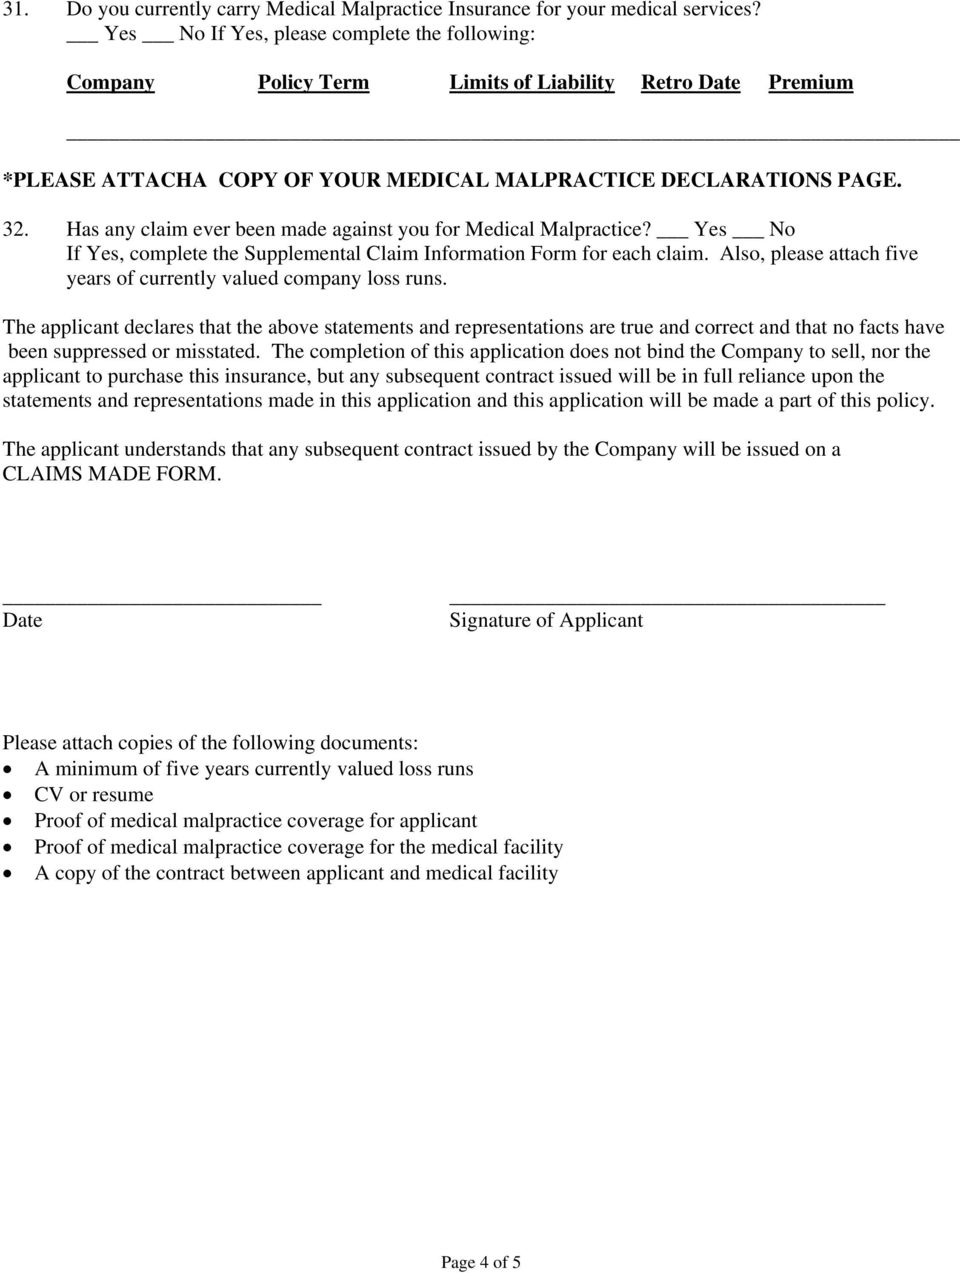 Has any claim ever been made against you for Medical Malpractice? Yes No If Yes, complete the Supplemental Claim Information Form for each claim.